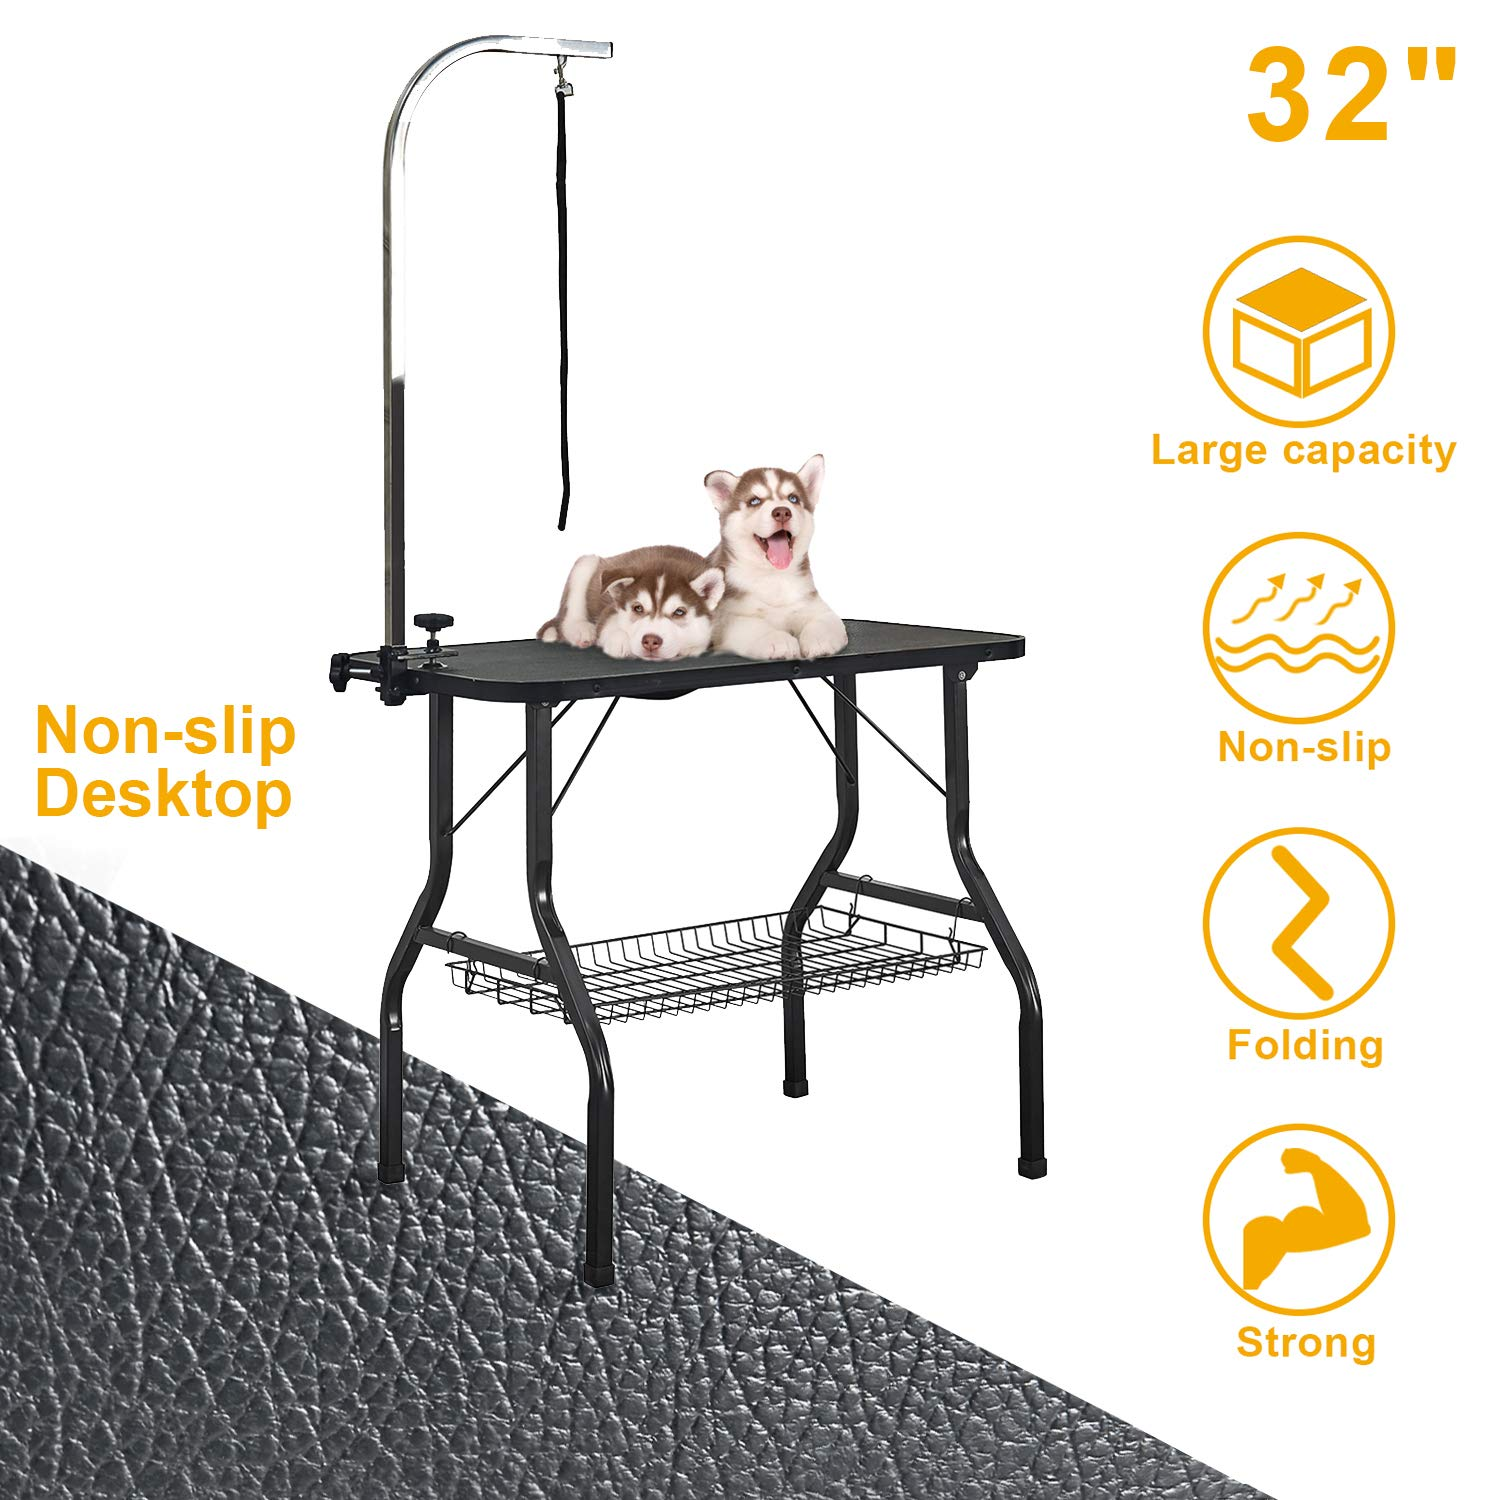 VECELA Pet Dog Grooming Table Small Size Heavy Duty 32'' Foldable, Portable with Adjustable Arm Clamp and Mesh Tray